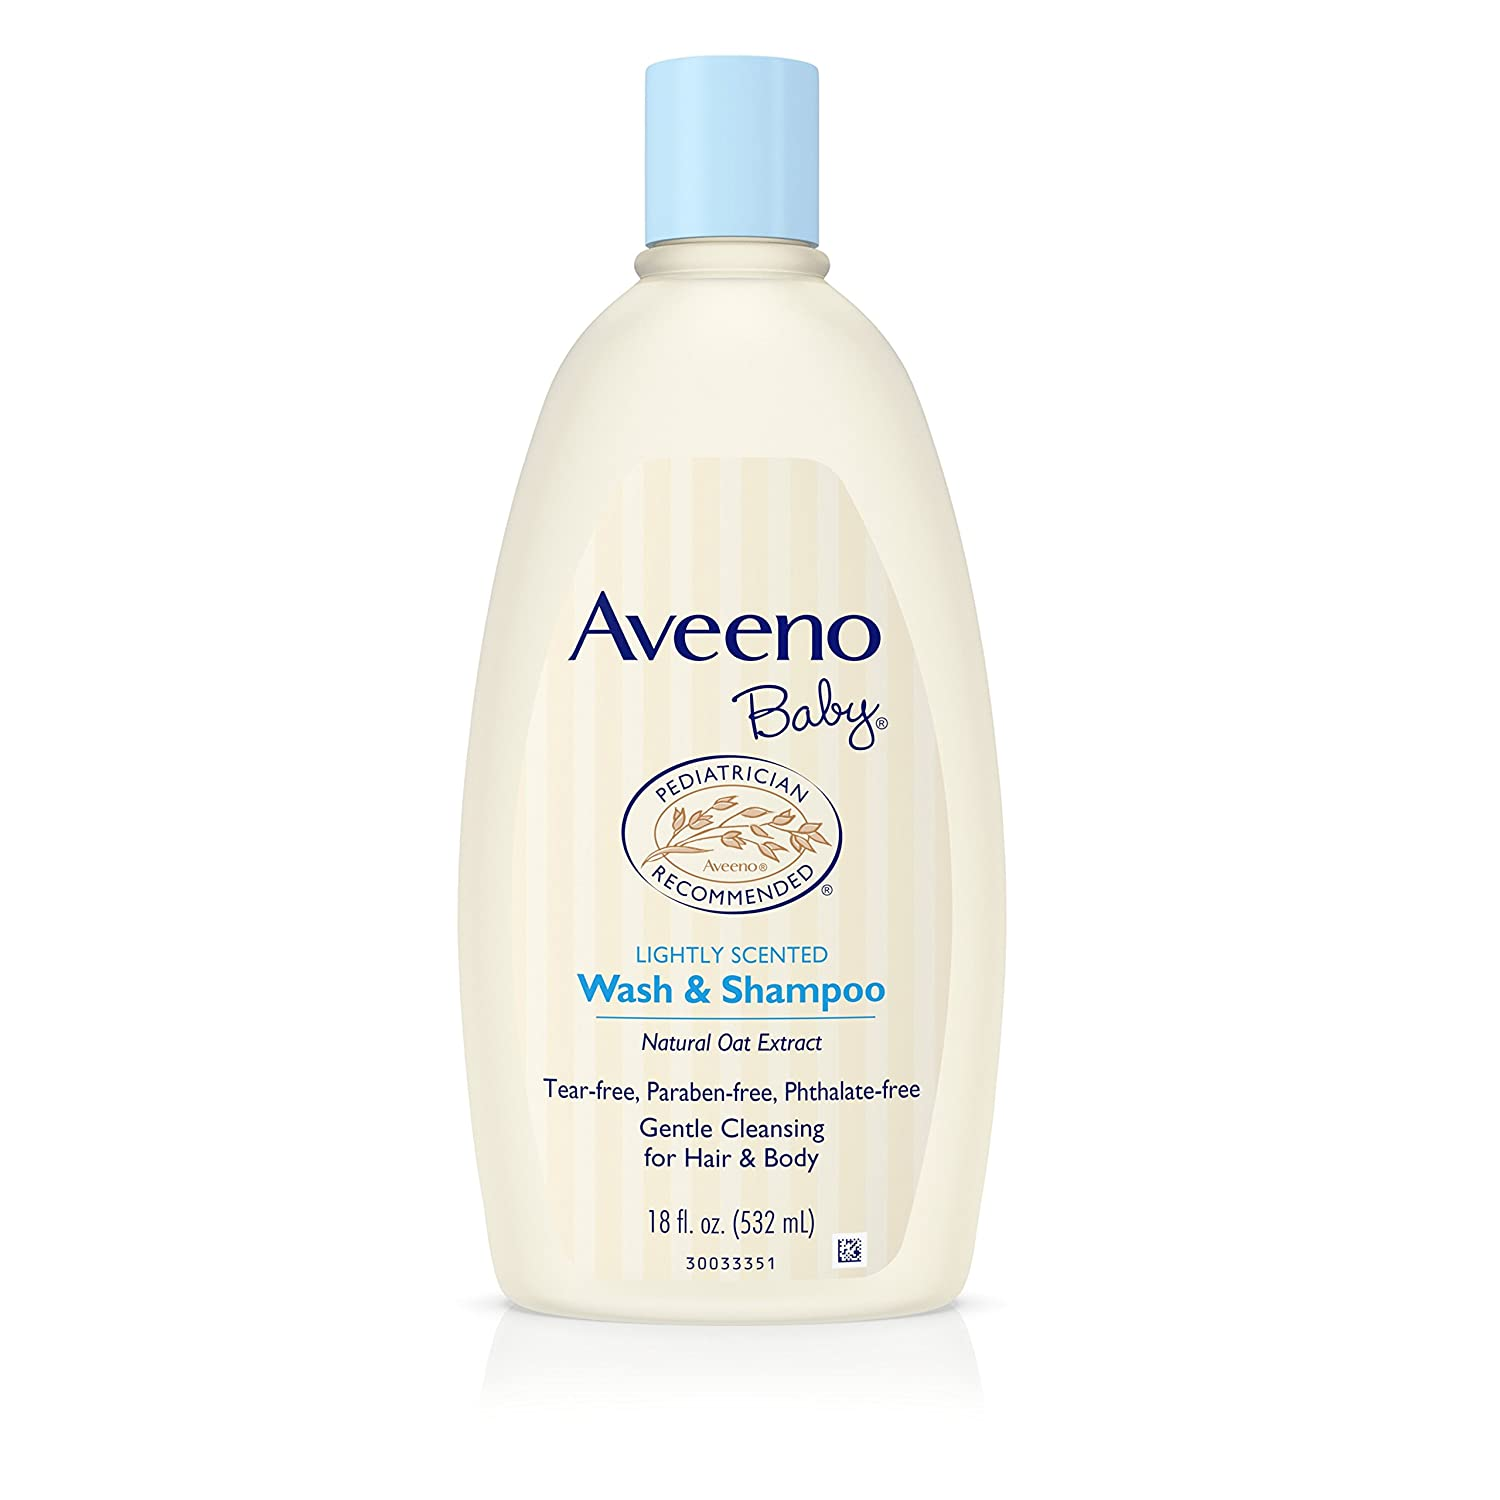 Aveeno Baby Gentle Wash & Shampoo with Natural Oat Extract, Tear-Free &, Lightly Scented, 18 fl. oz 381371023905